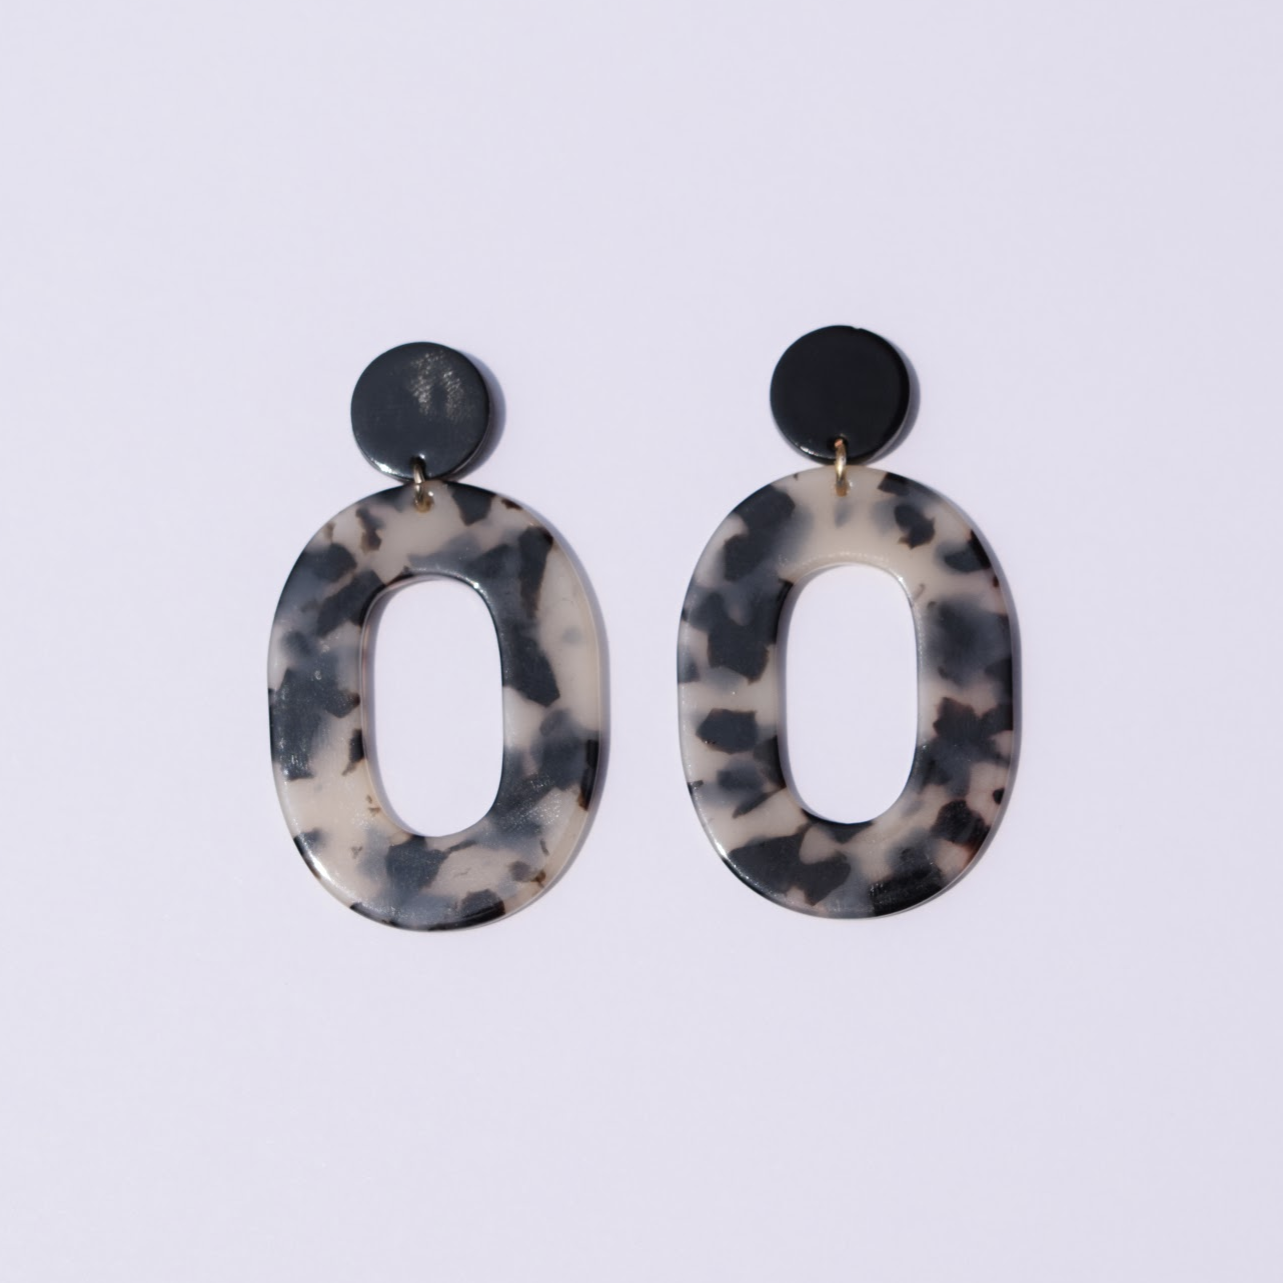 Black Pepper Acrylic Earrings - Oriana Lamarca LLC